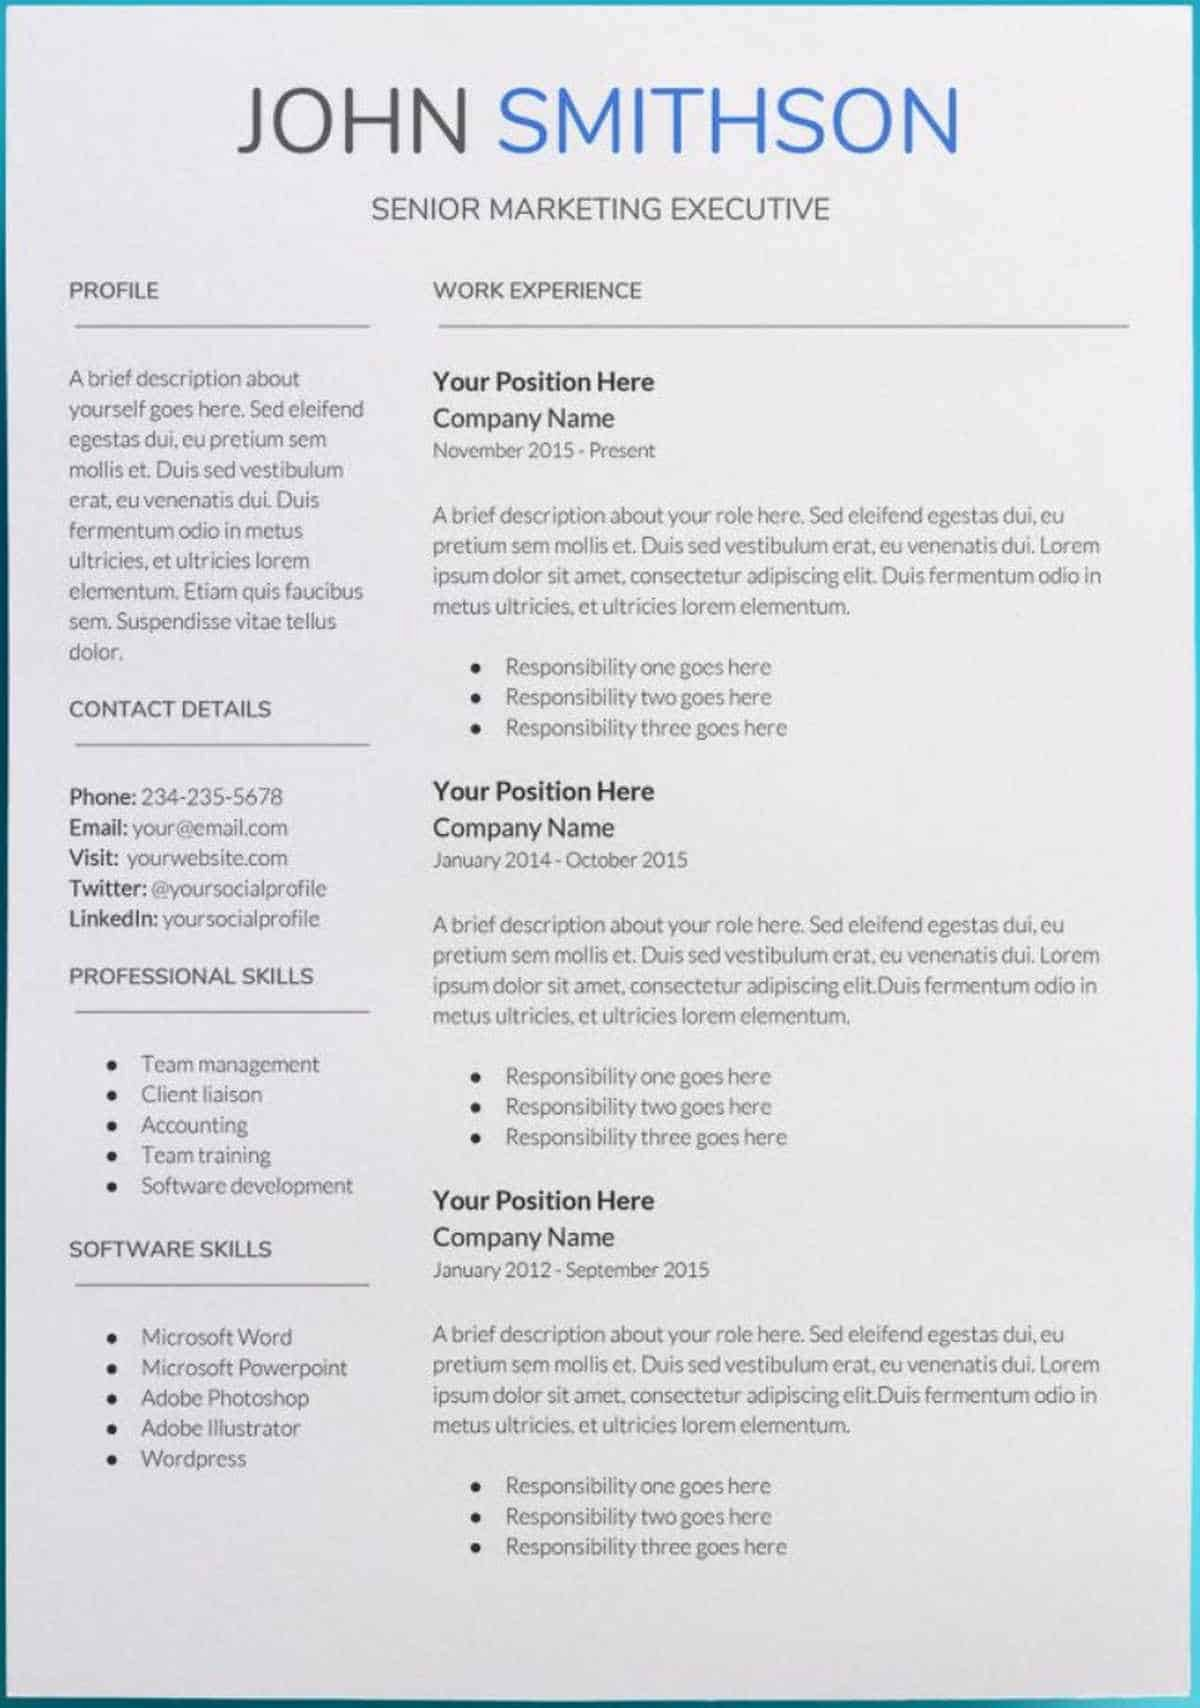 Resume with Picture Template Best Of 30 Google Docs Resume Templates [downloadable Pdfs]